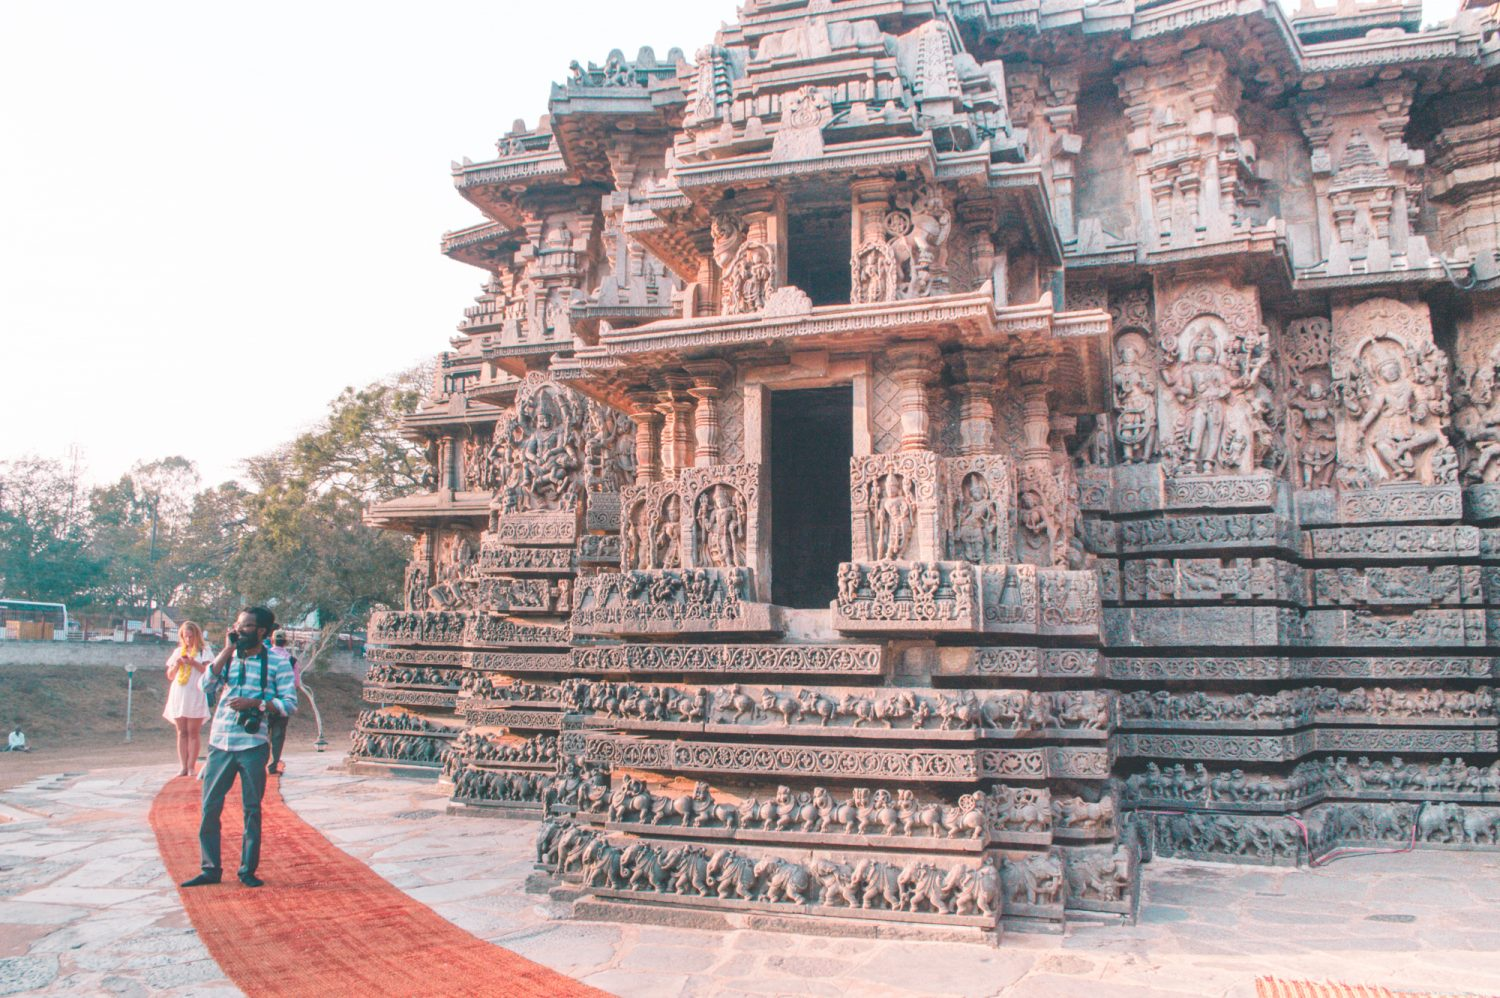 Incredible cultural must-sees in the Indian province of Karnatka! Amazing things to do in India if you plan on visiting Karnataka. #India #Travel #Karnataka